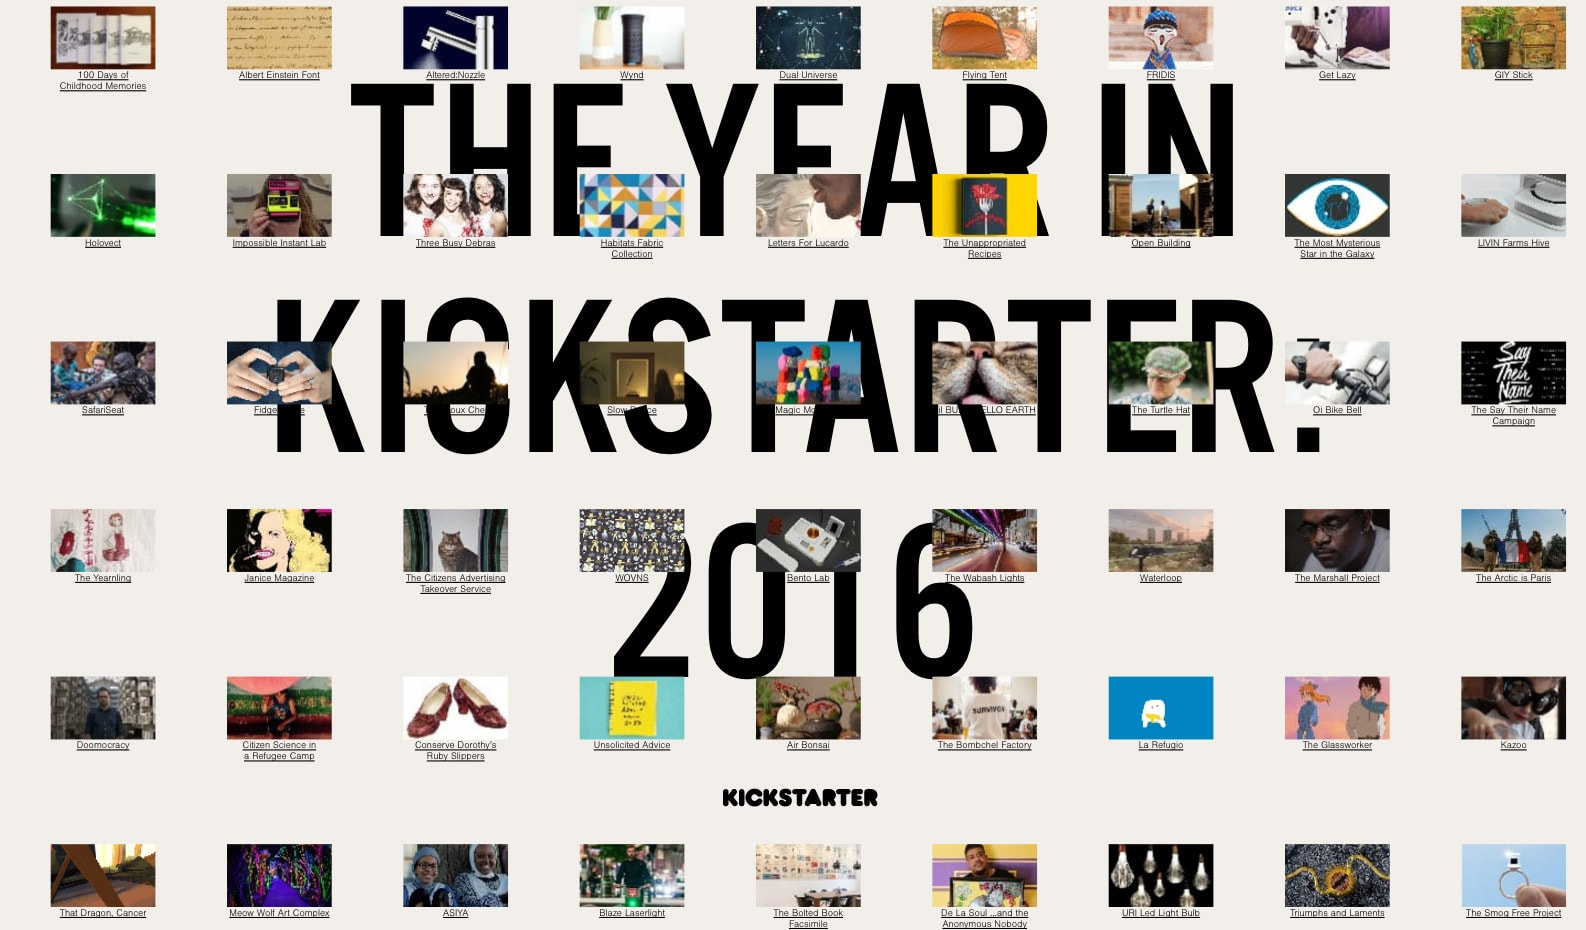 Year in Review by Kickstarter 2016 from UIGarage